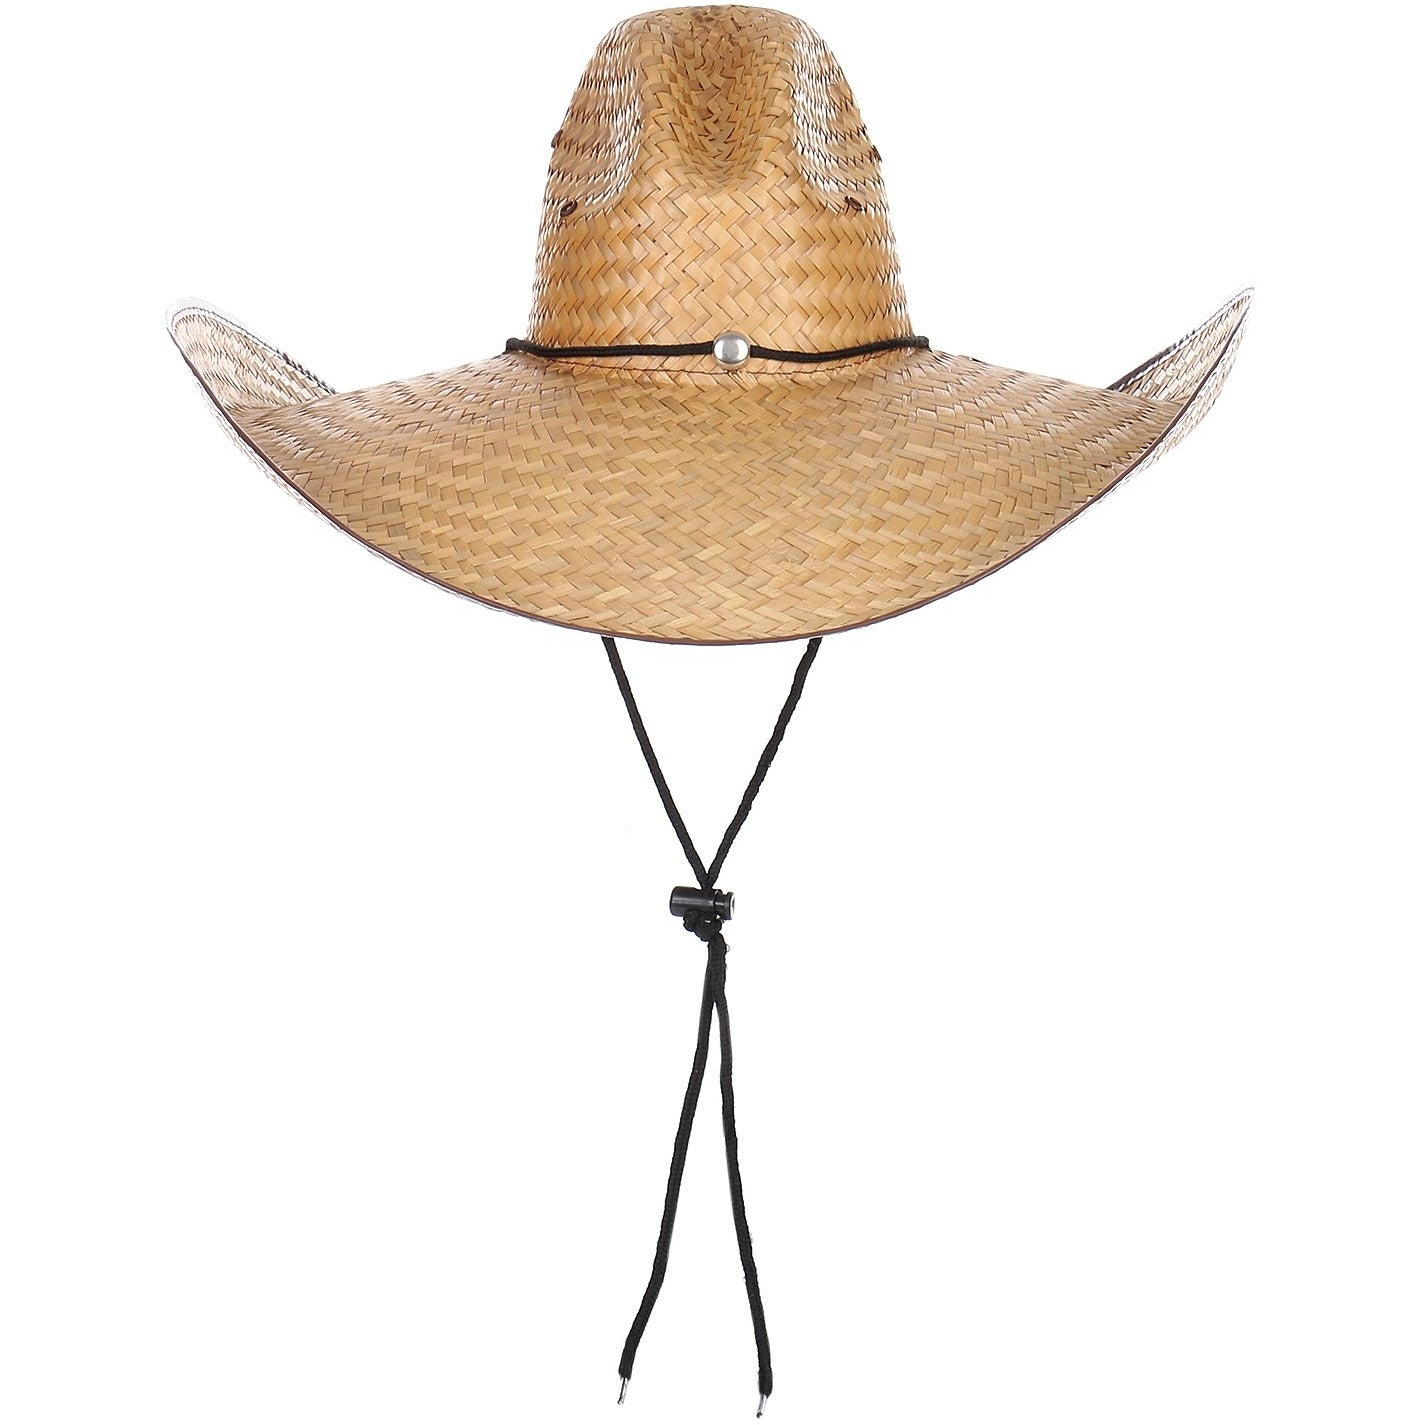 ... Straw Cowboy Oversize Hat with Drawstring. HATS. HATS 3f6cc37b19ea